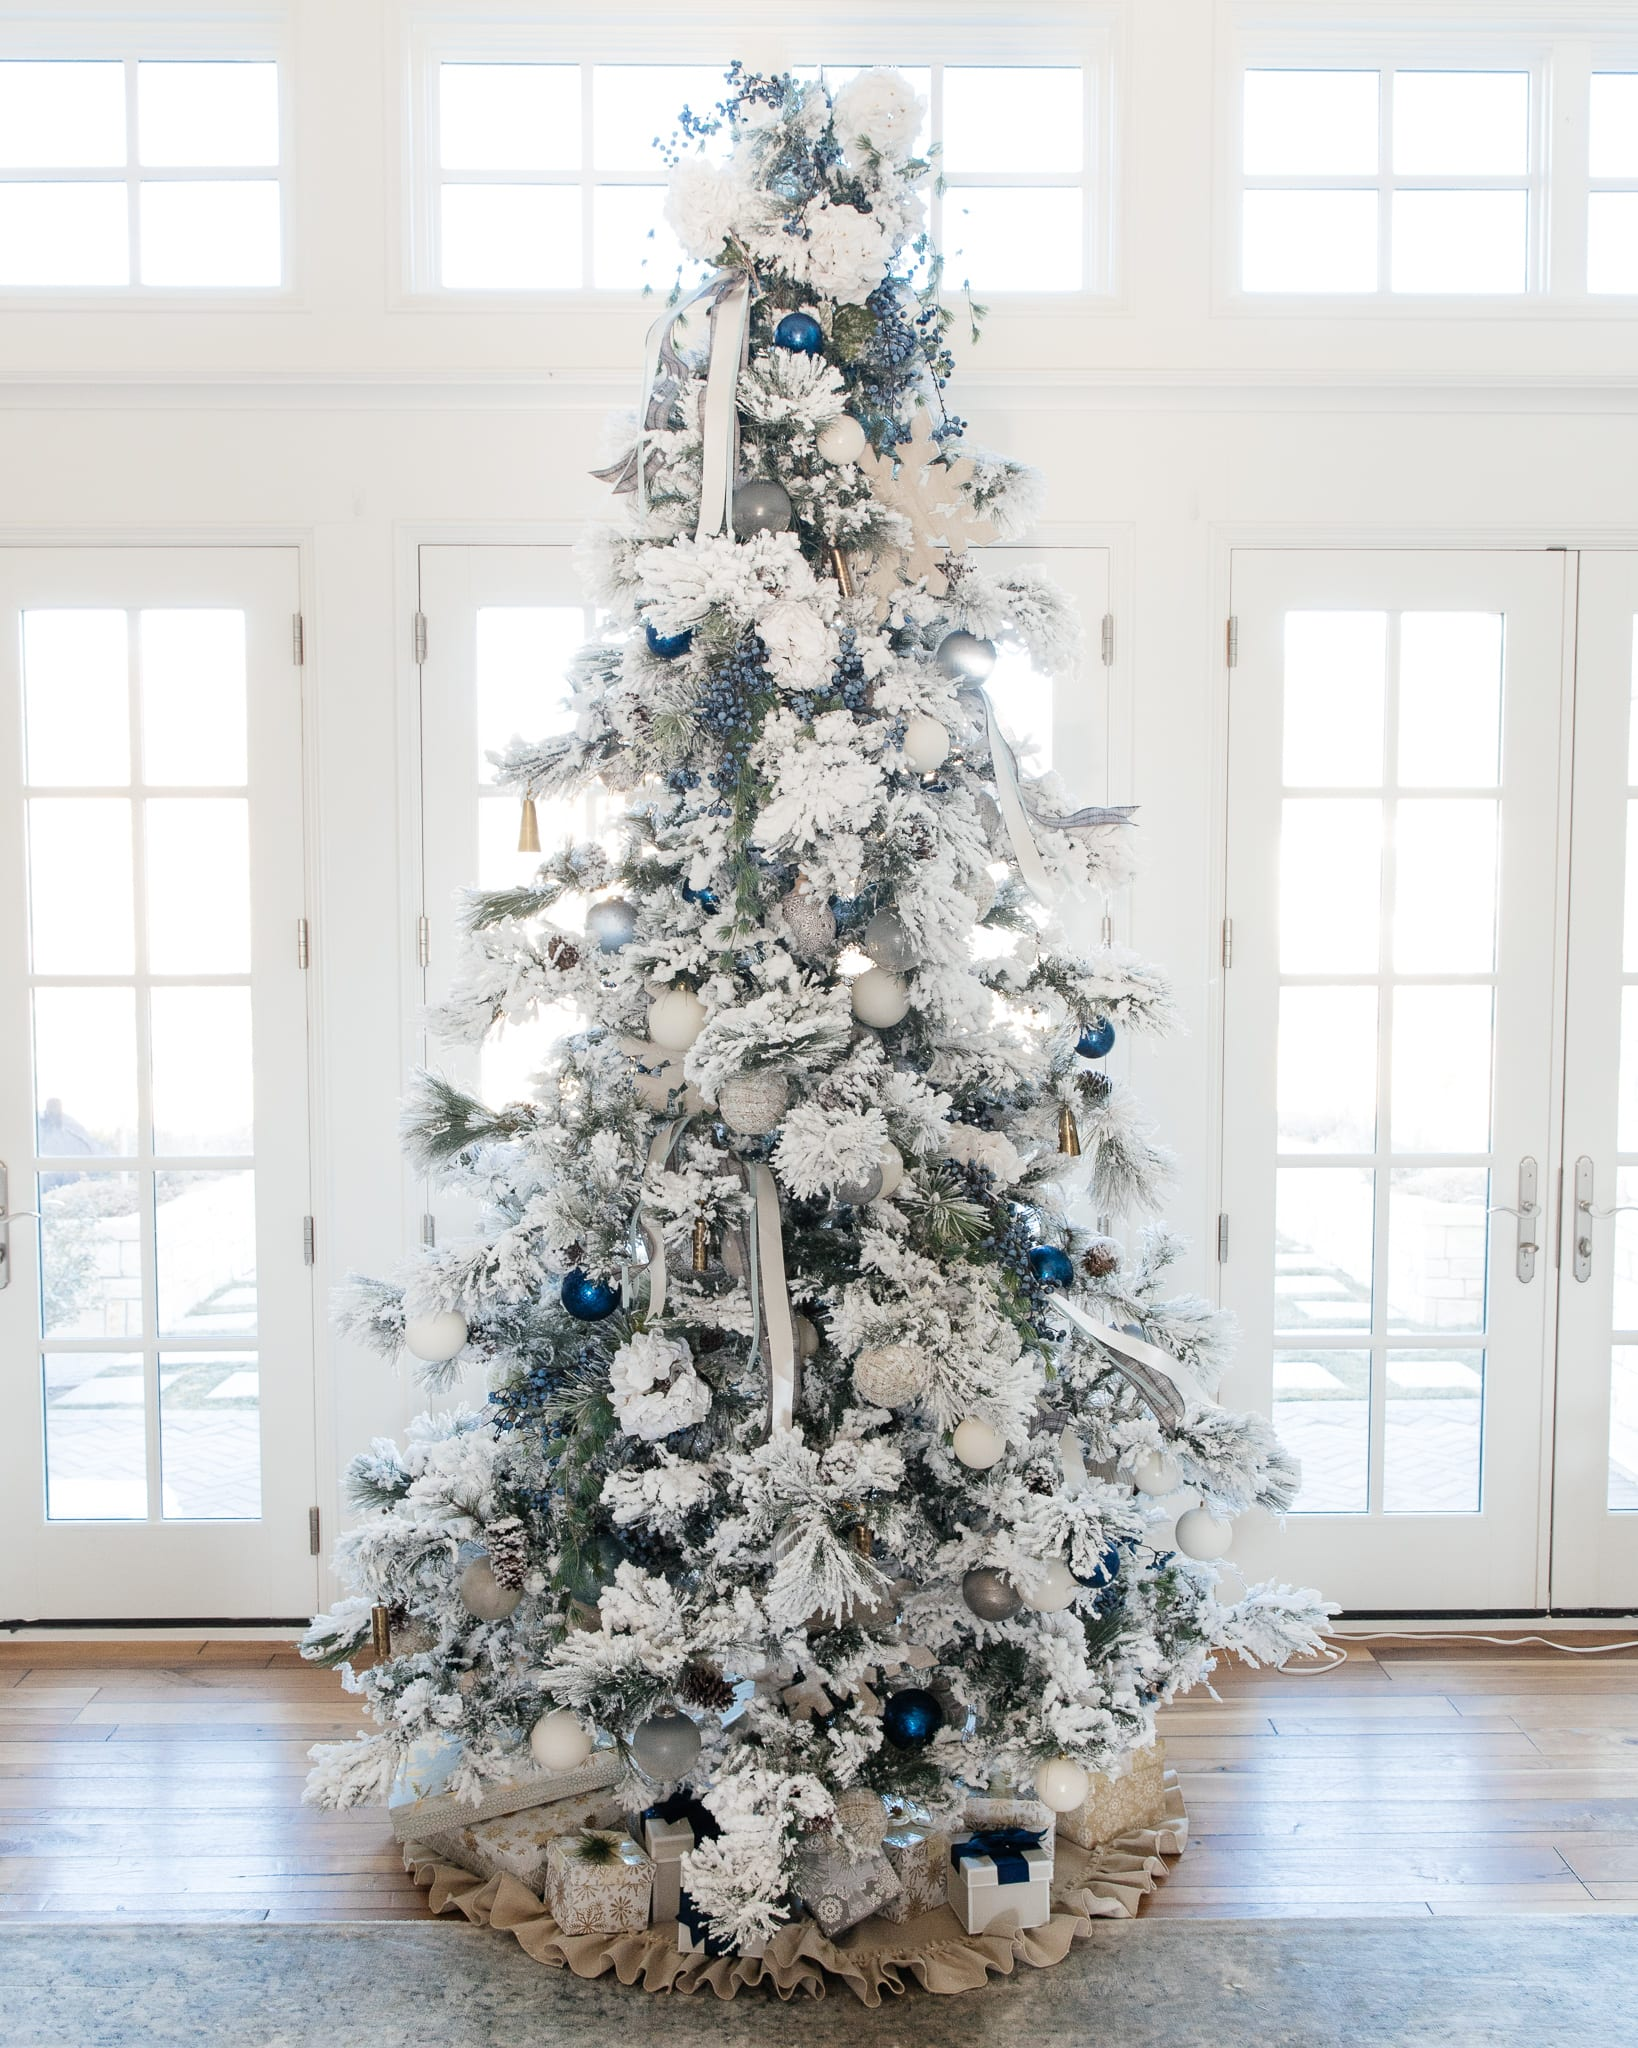 christmas tree christmas decor holiday decor home decor christmas blue silver ivory ornaments flocked tree